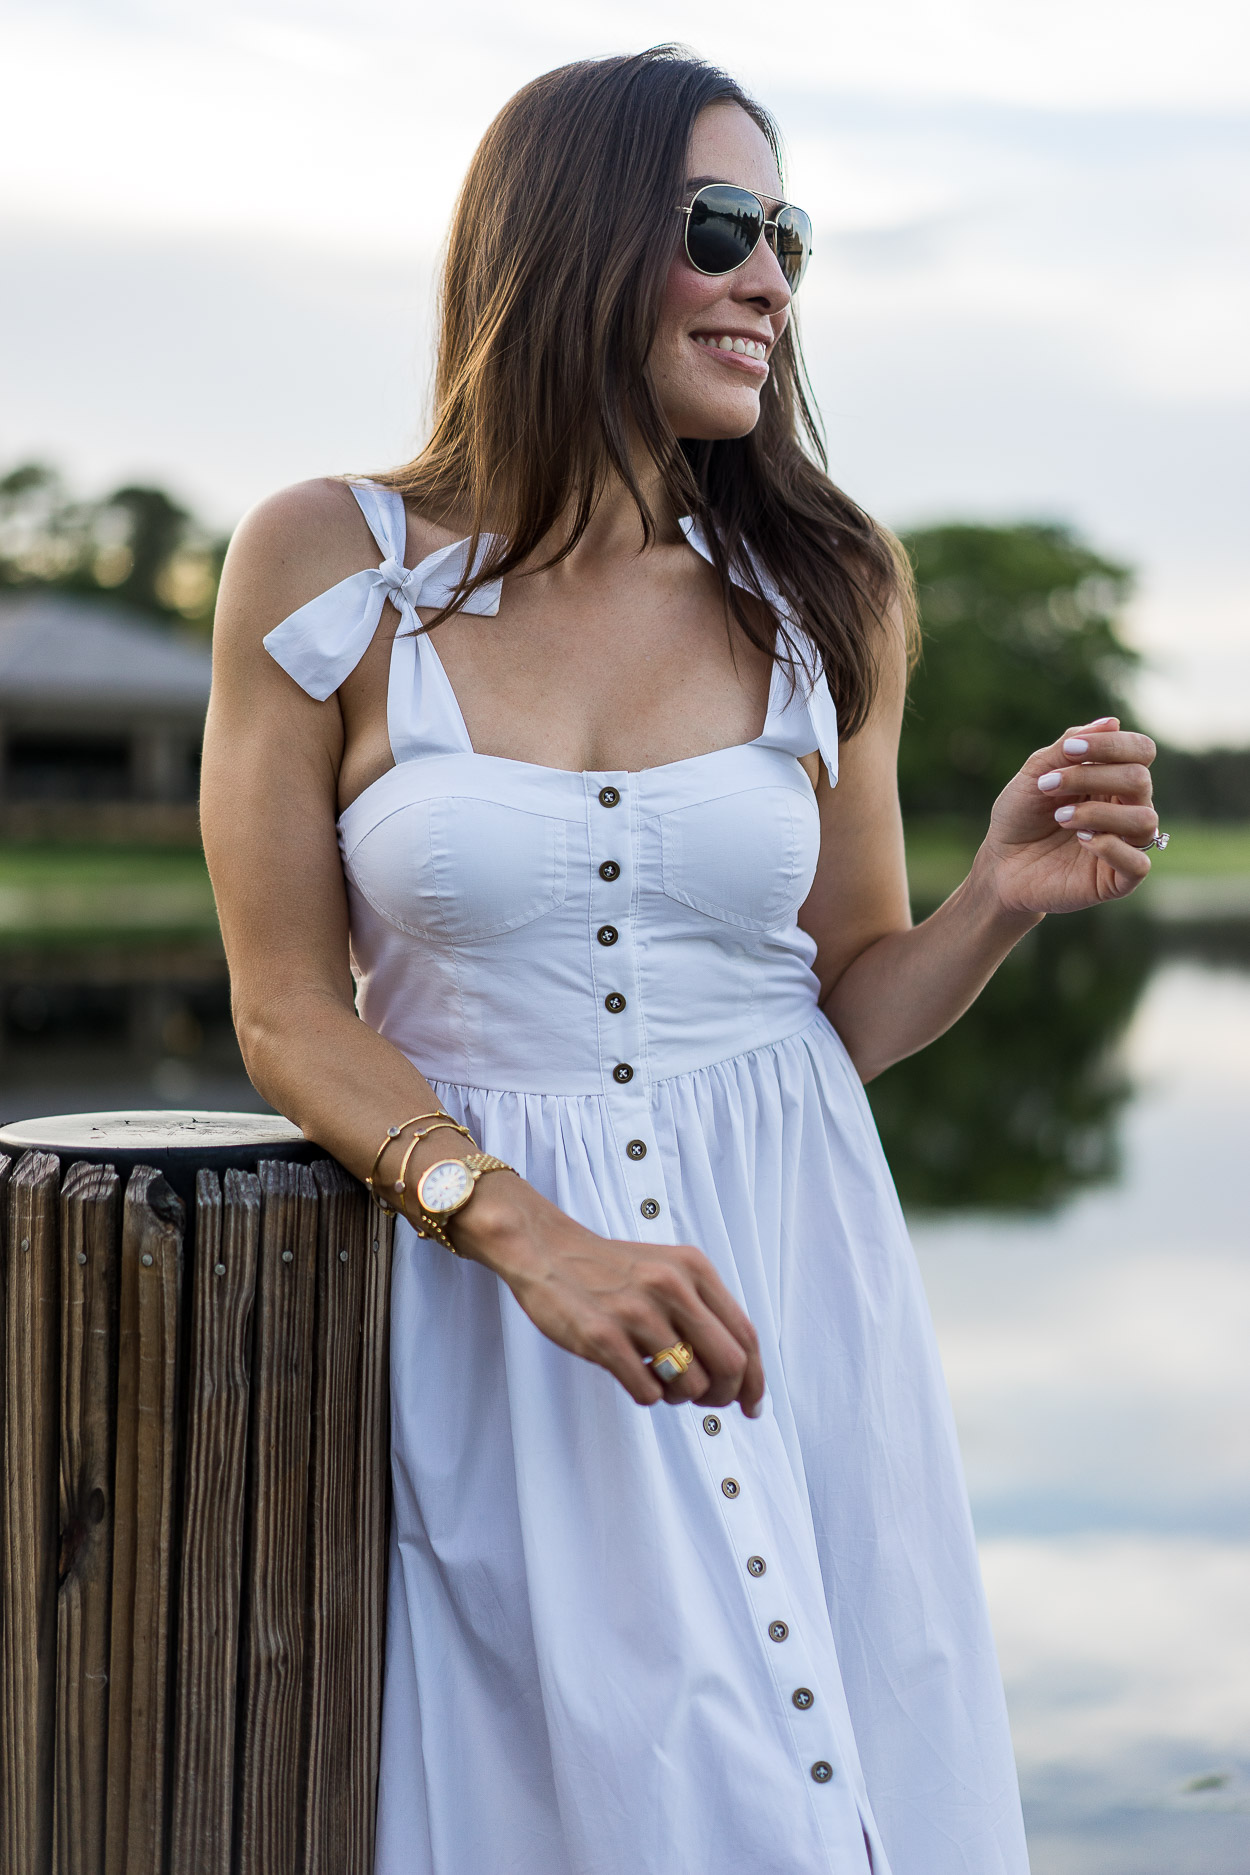 Style a Summer white dress like this Chicwish white cami dress worn by AGlamLifestyle blogger